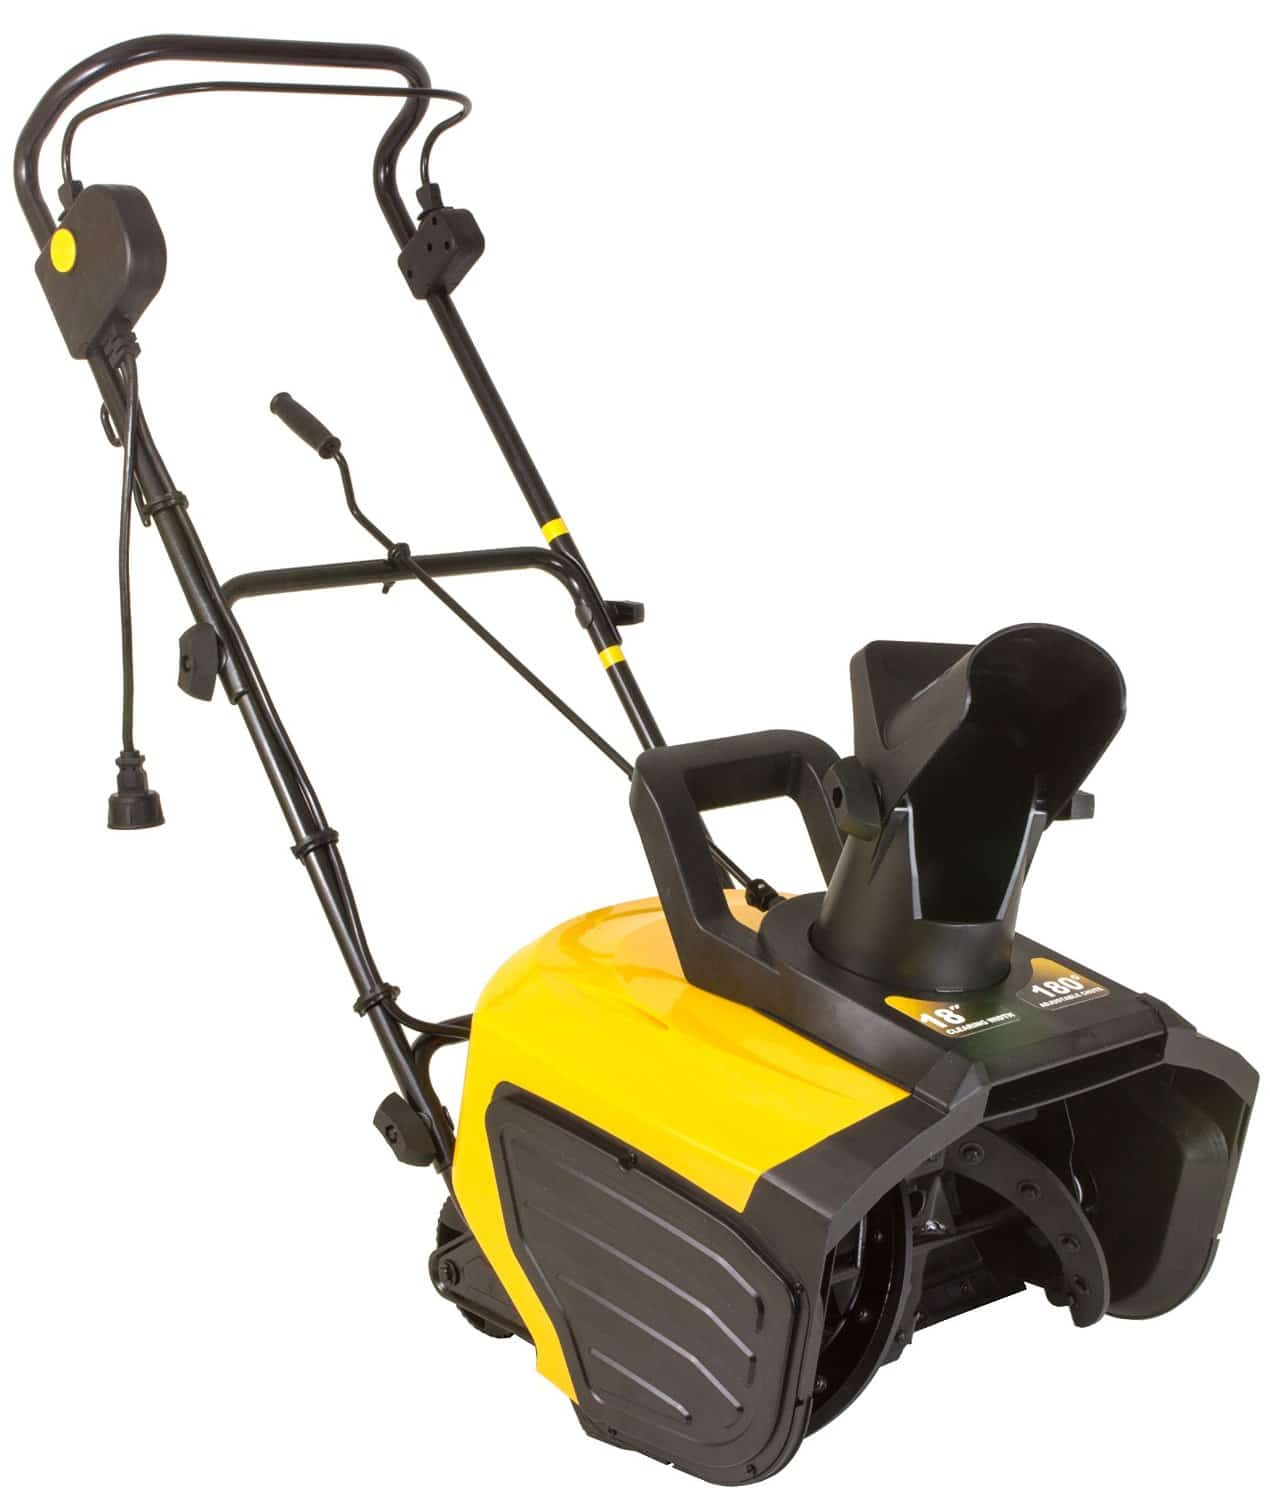 Top Rated Electric Snow Blowers : Best rated electric snow blowers reviews lawn